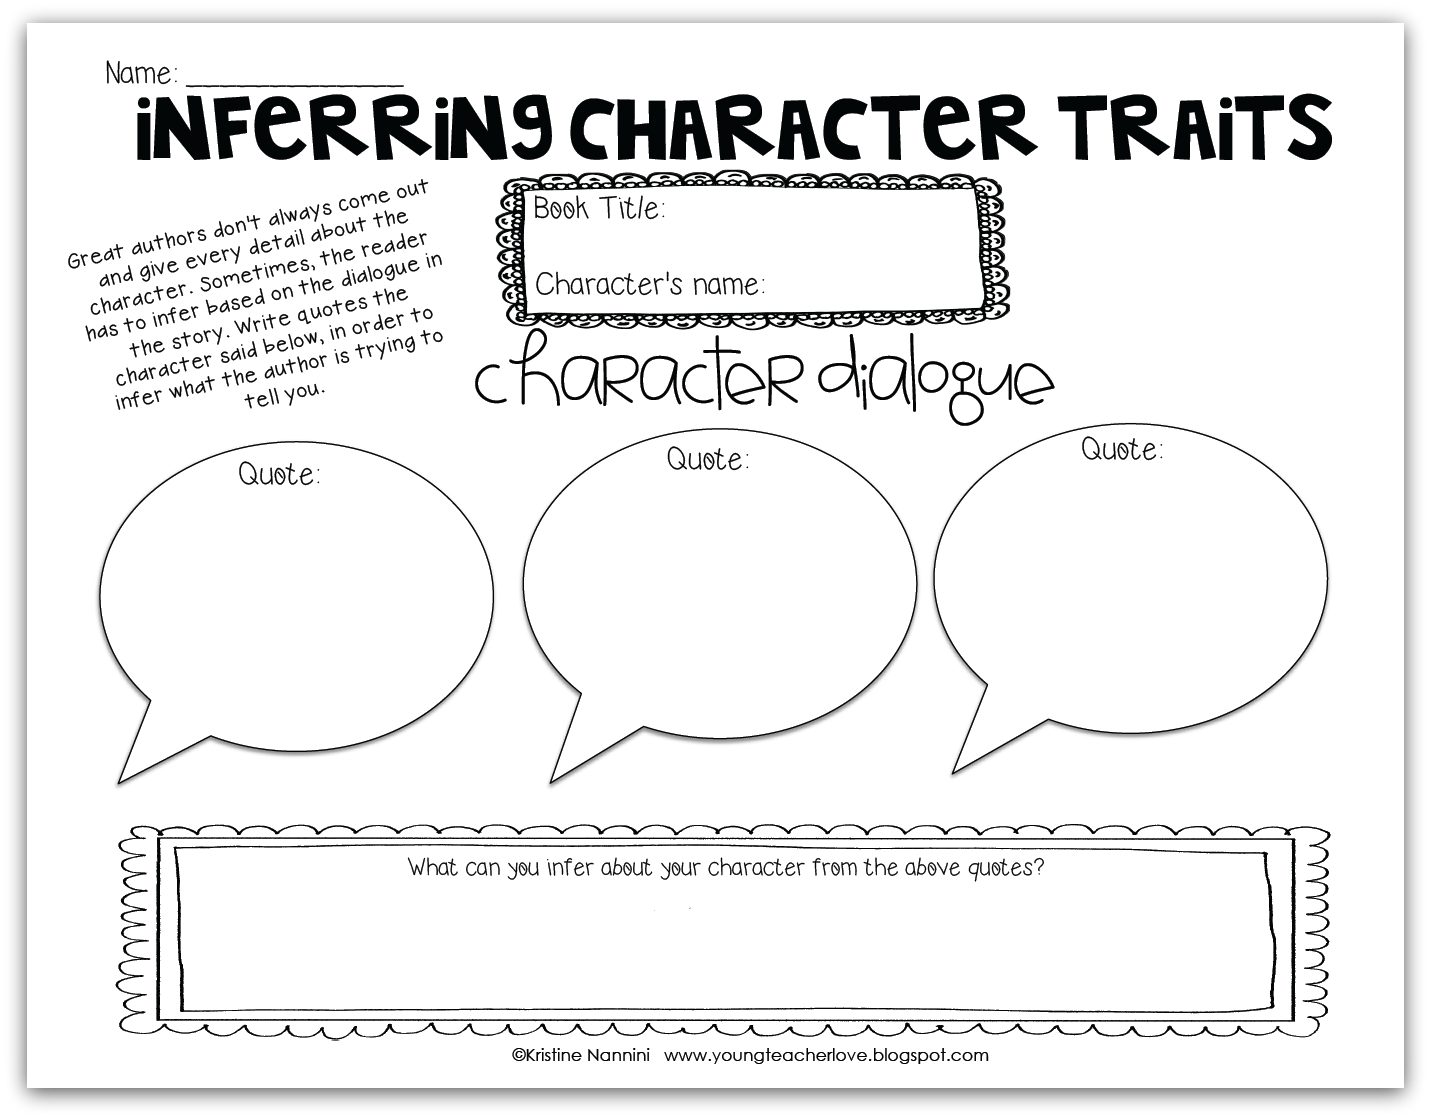 medium resolution of Inferring Character Traits Through Dialogue (Plus a Free Graphic Organizer)  - Young Teacher Love   Free graphic organizers